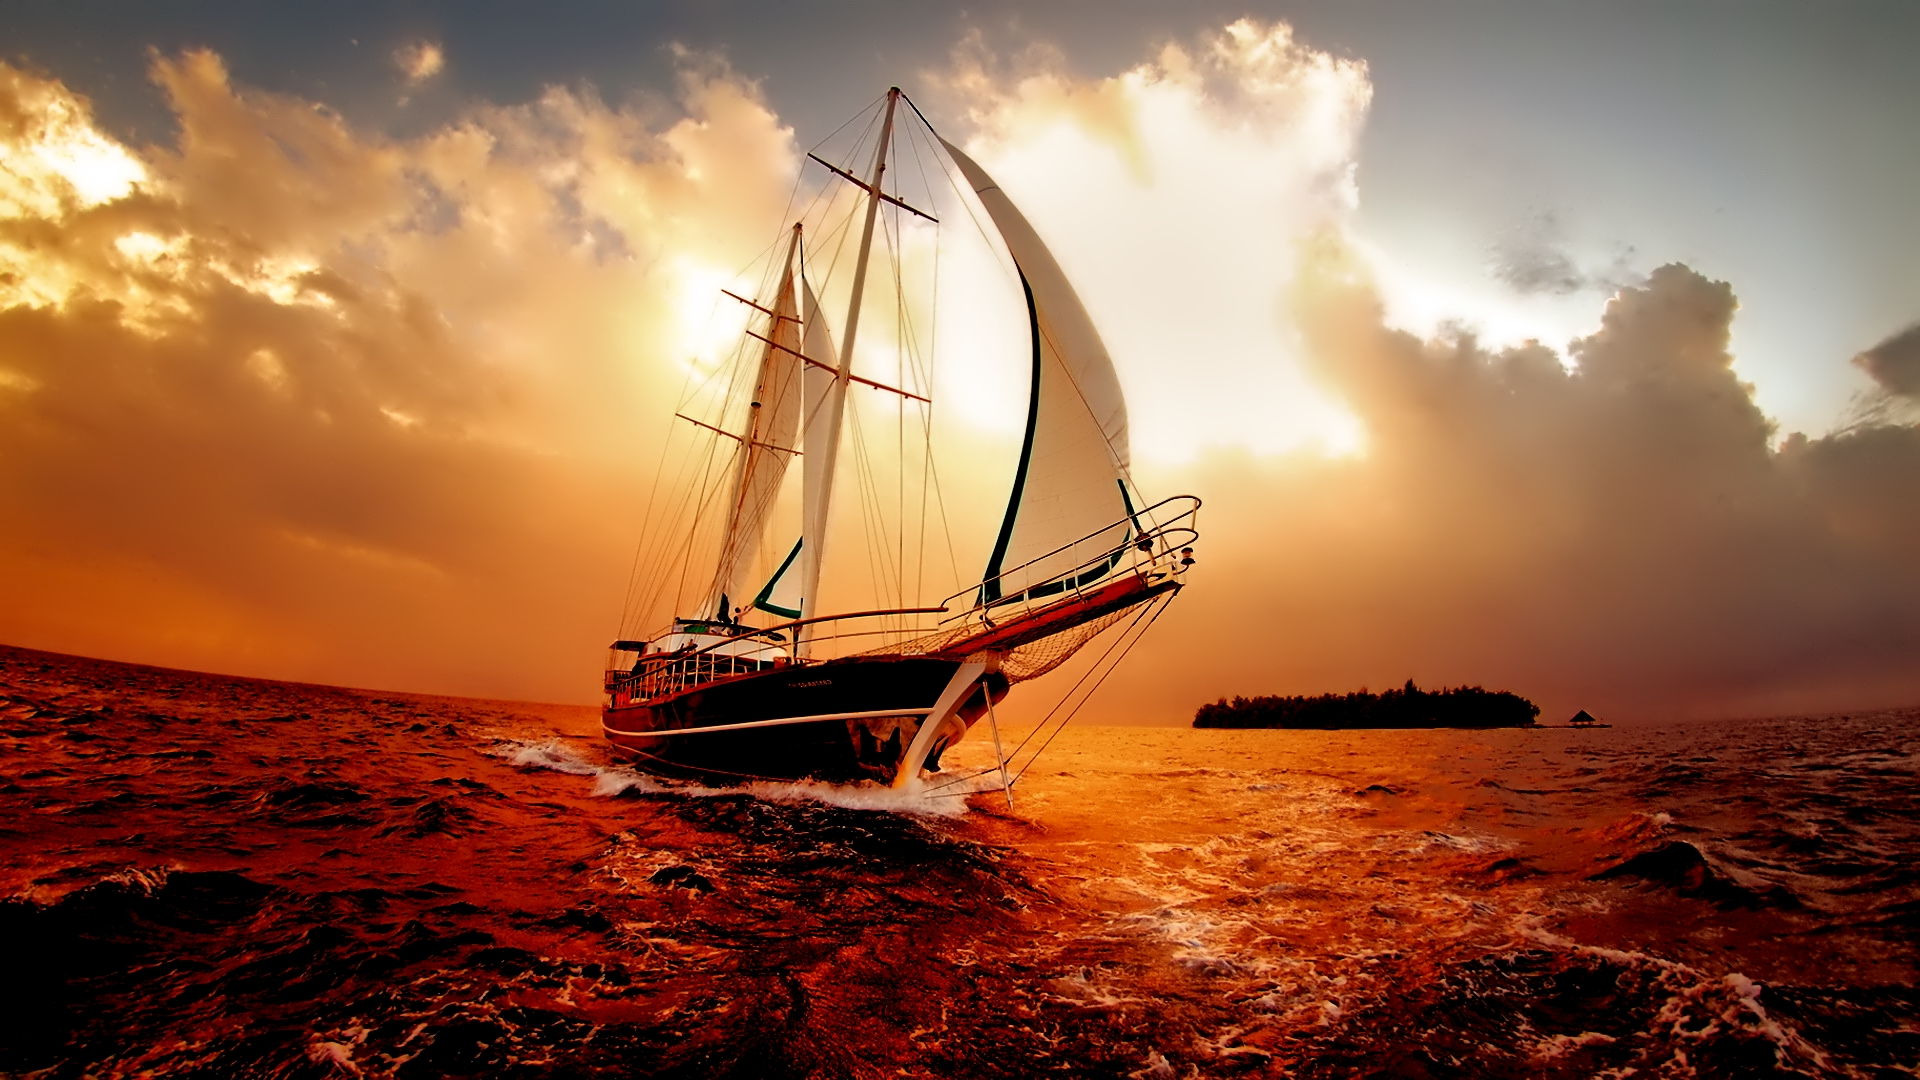 Amazing Boat Wallpaper